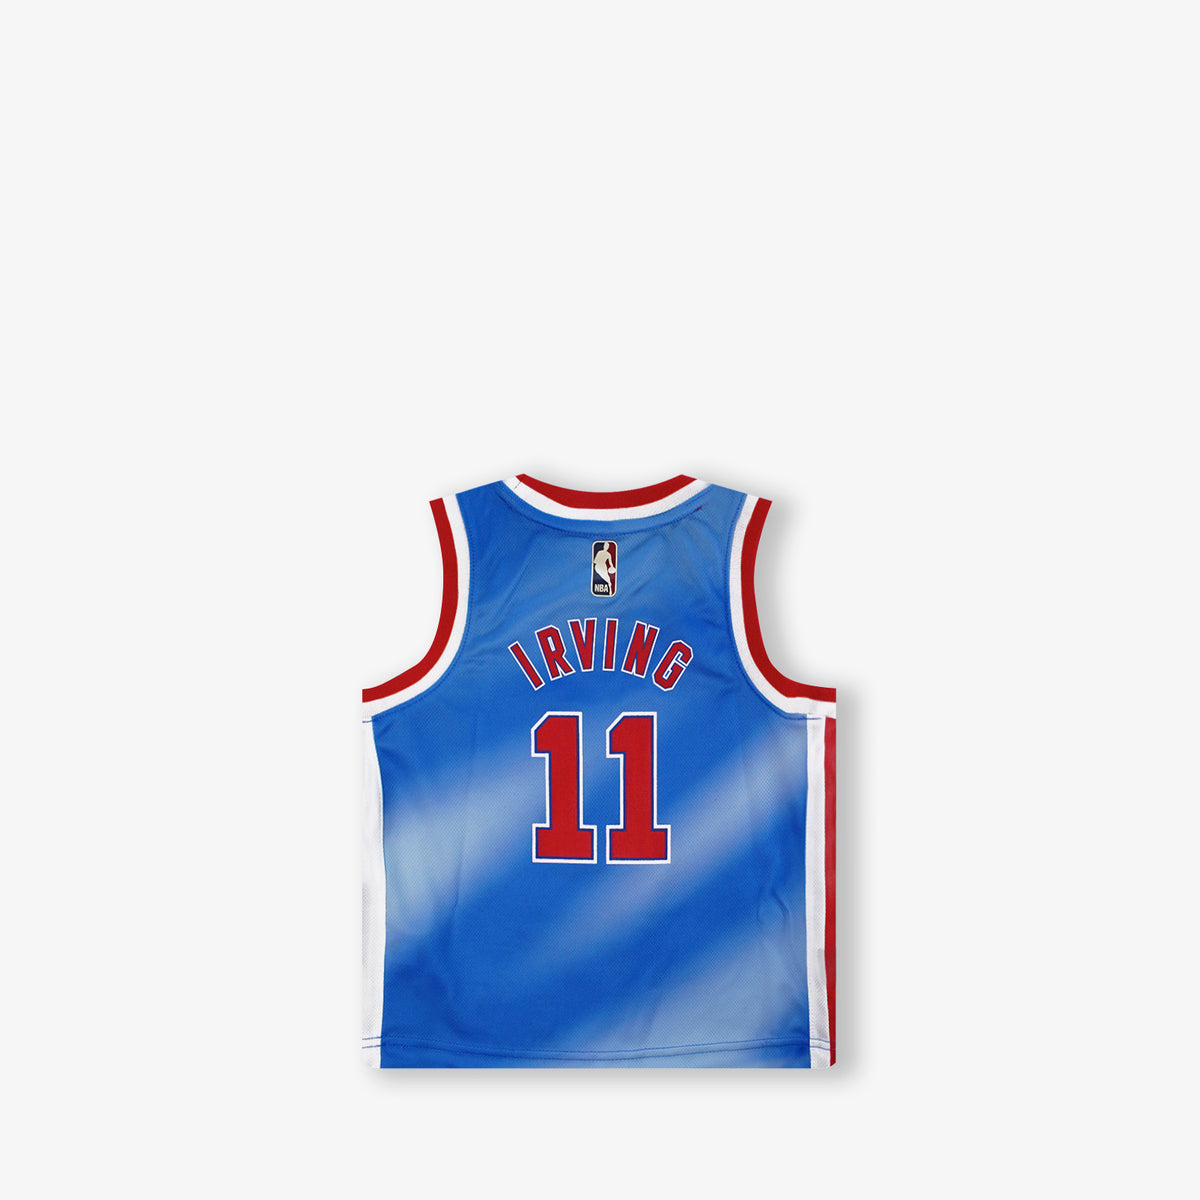 Kyrie Irving Brooklyn Nets Hardwood Classic Edition Toddler Swingman Jersey - Blue